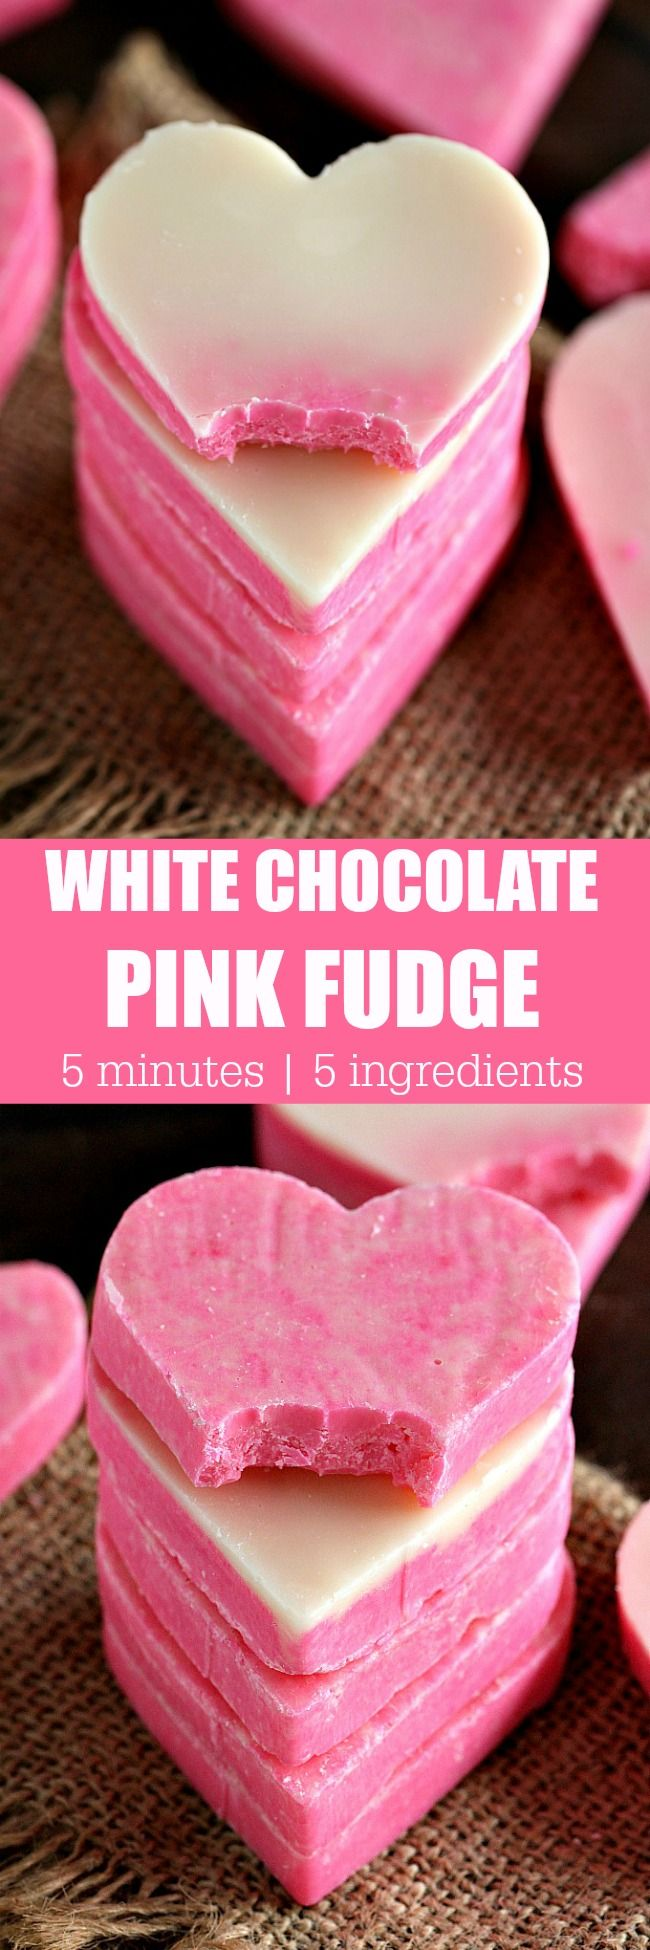 Pink White Chocolate Fudge is incredibly easy to make and very festive. 3 Ingredients, 5 minutes to get a creamy and irresistible fudge.